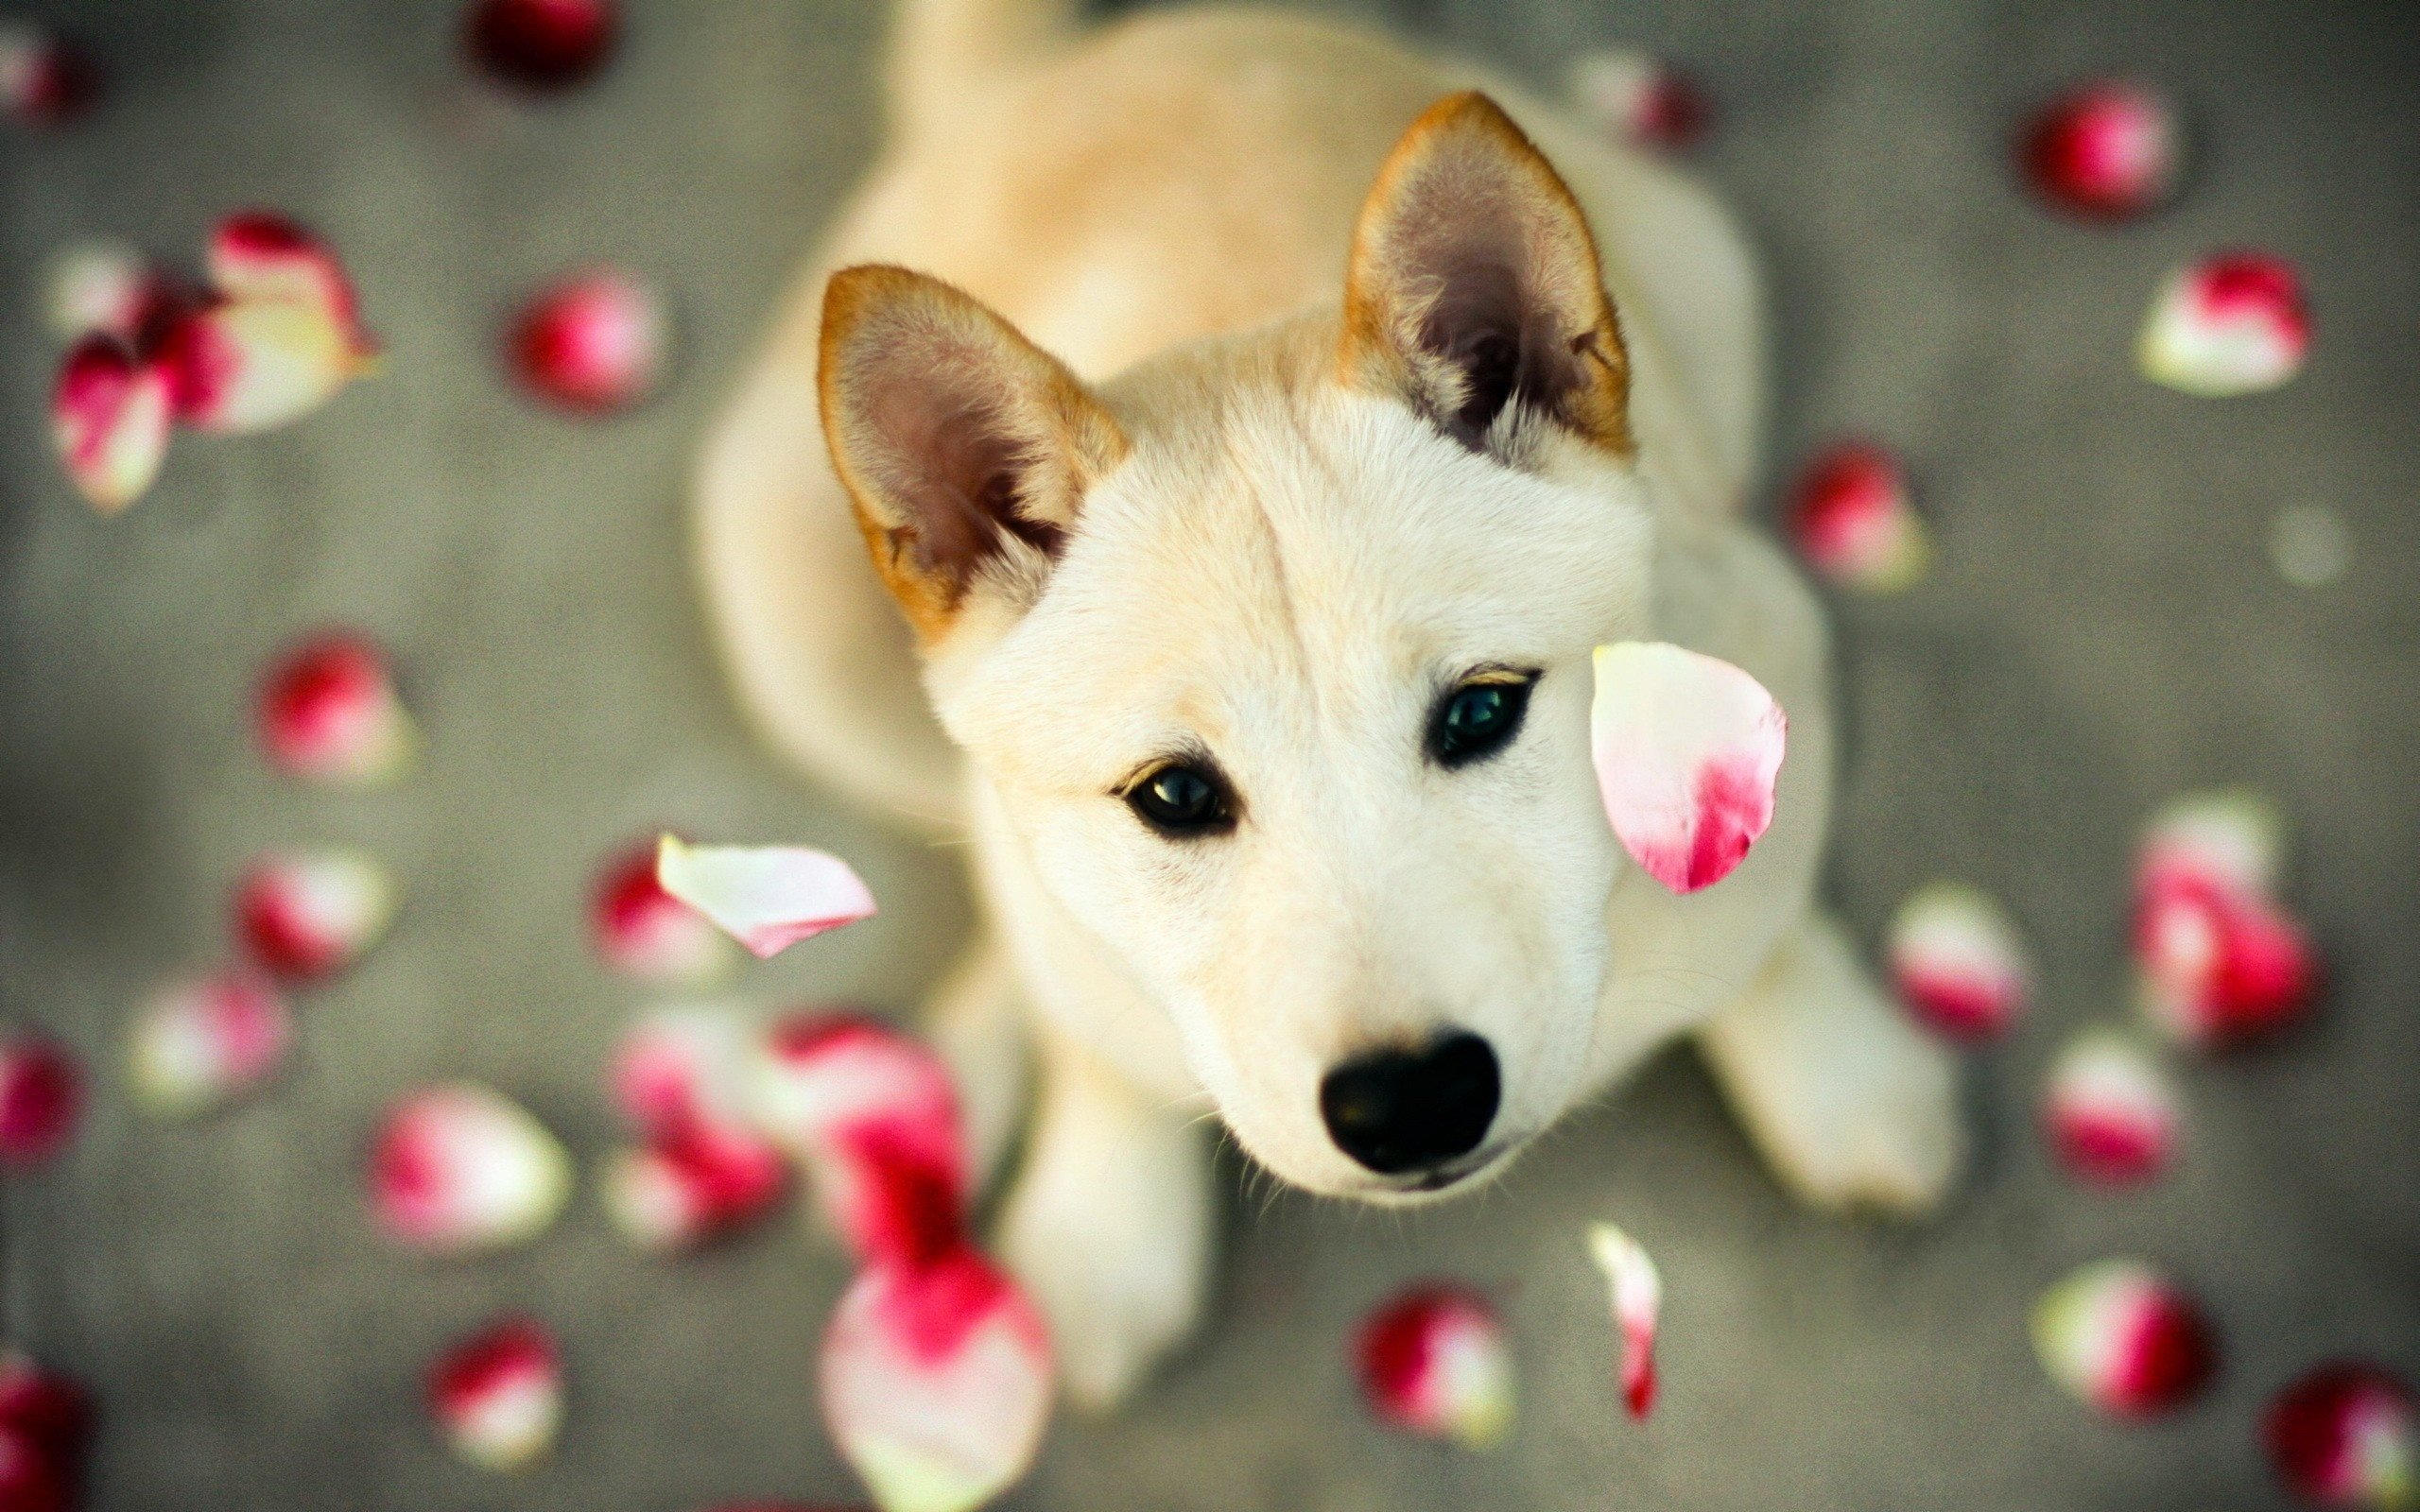 2560x1600 Cute Dog with Petals, Husky Dog with rose petals.